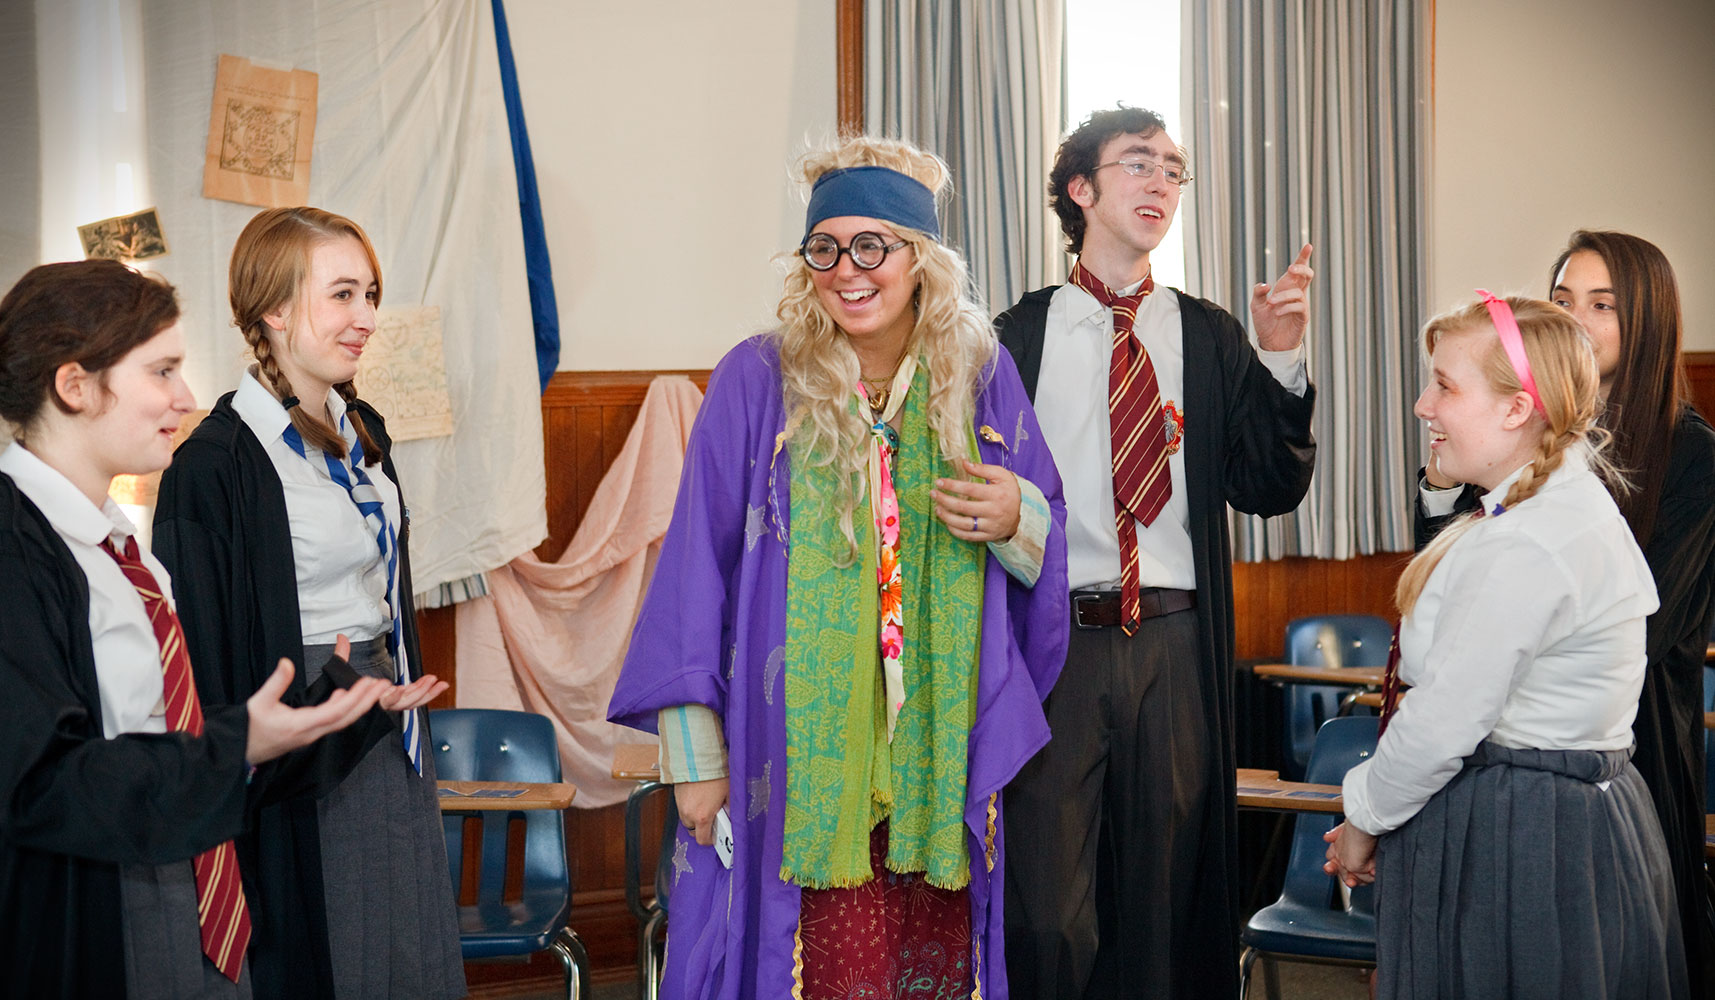 Hamilton students dress as Harry Potter characters for the annual Hogwarts at Hamilton event.